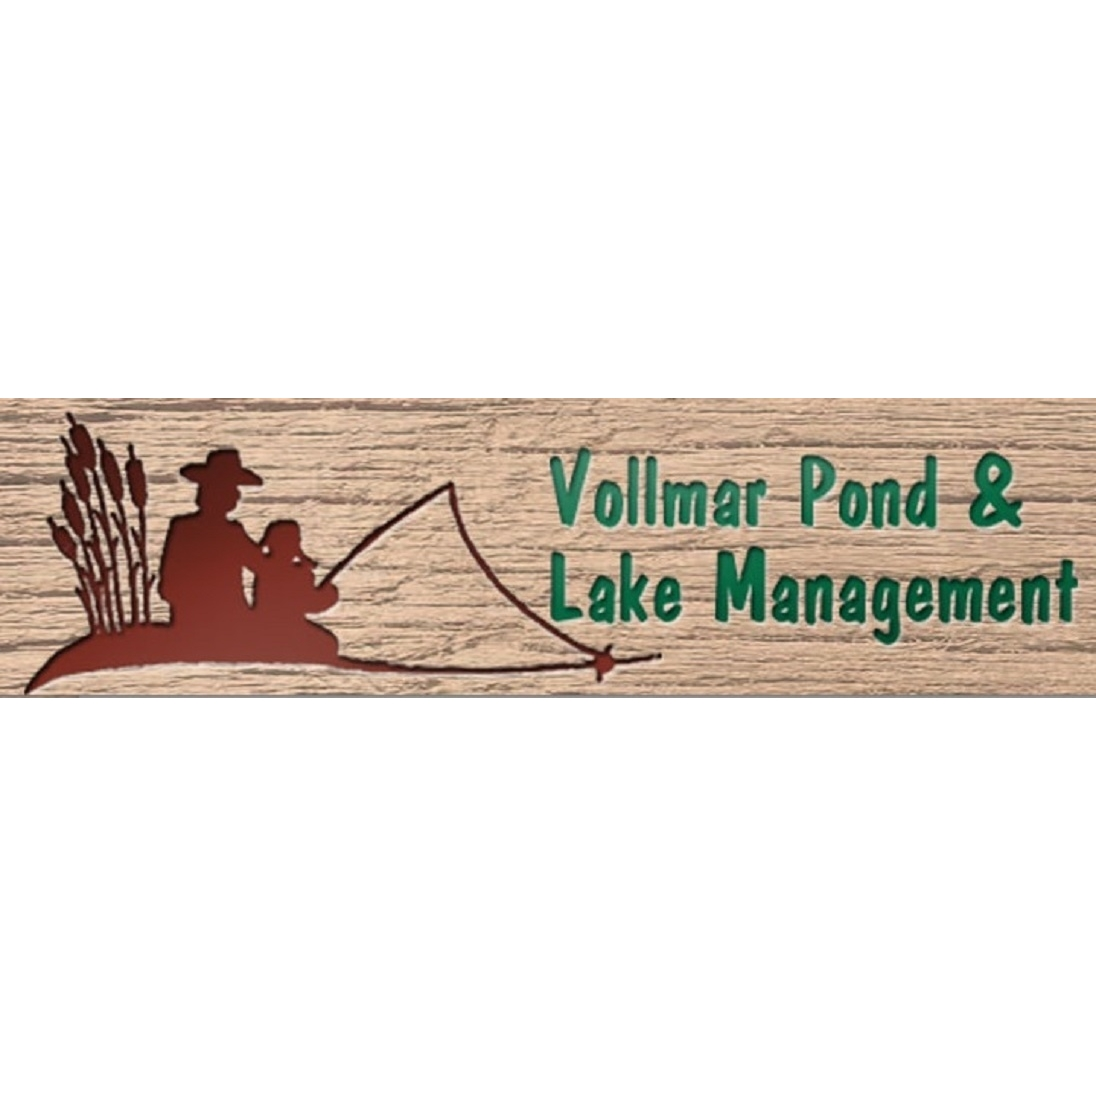 Vollmar Pond Lake Management Coupons Near Me In 8coupons